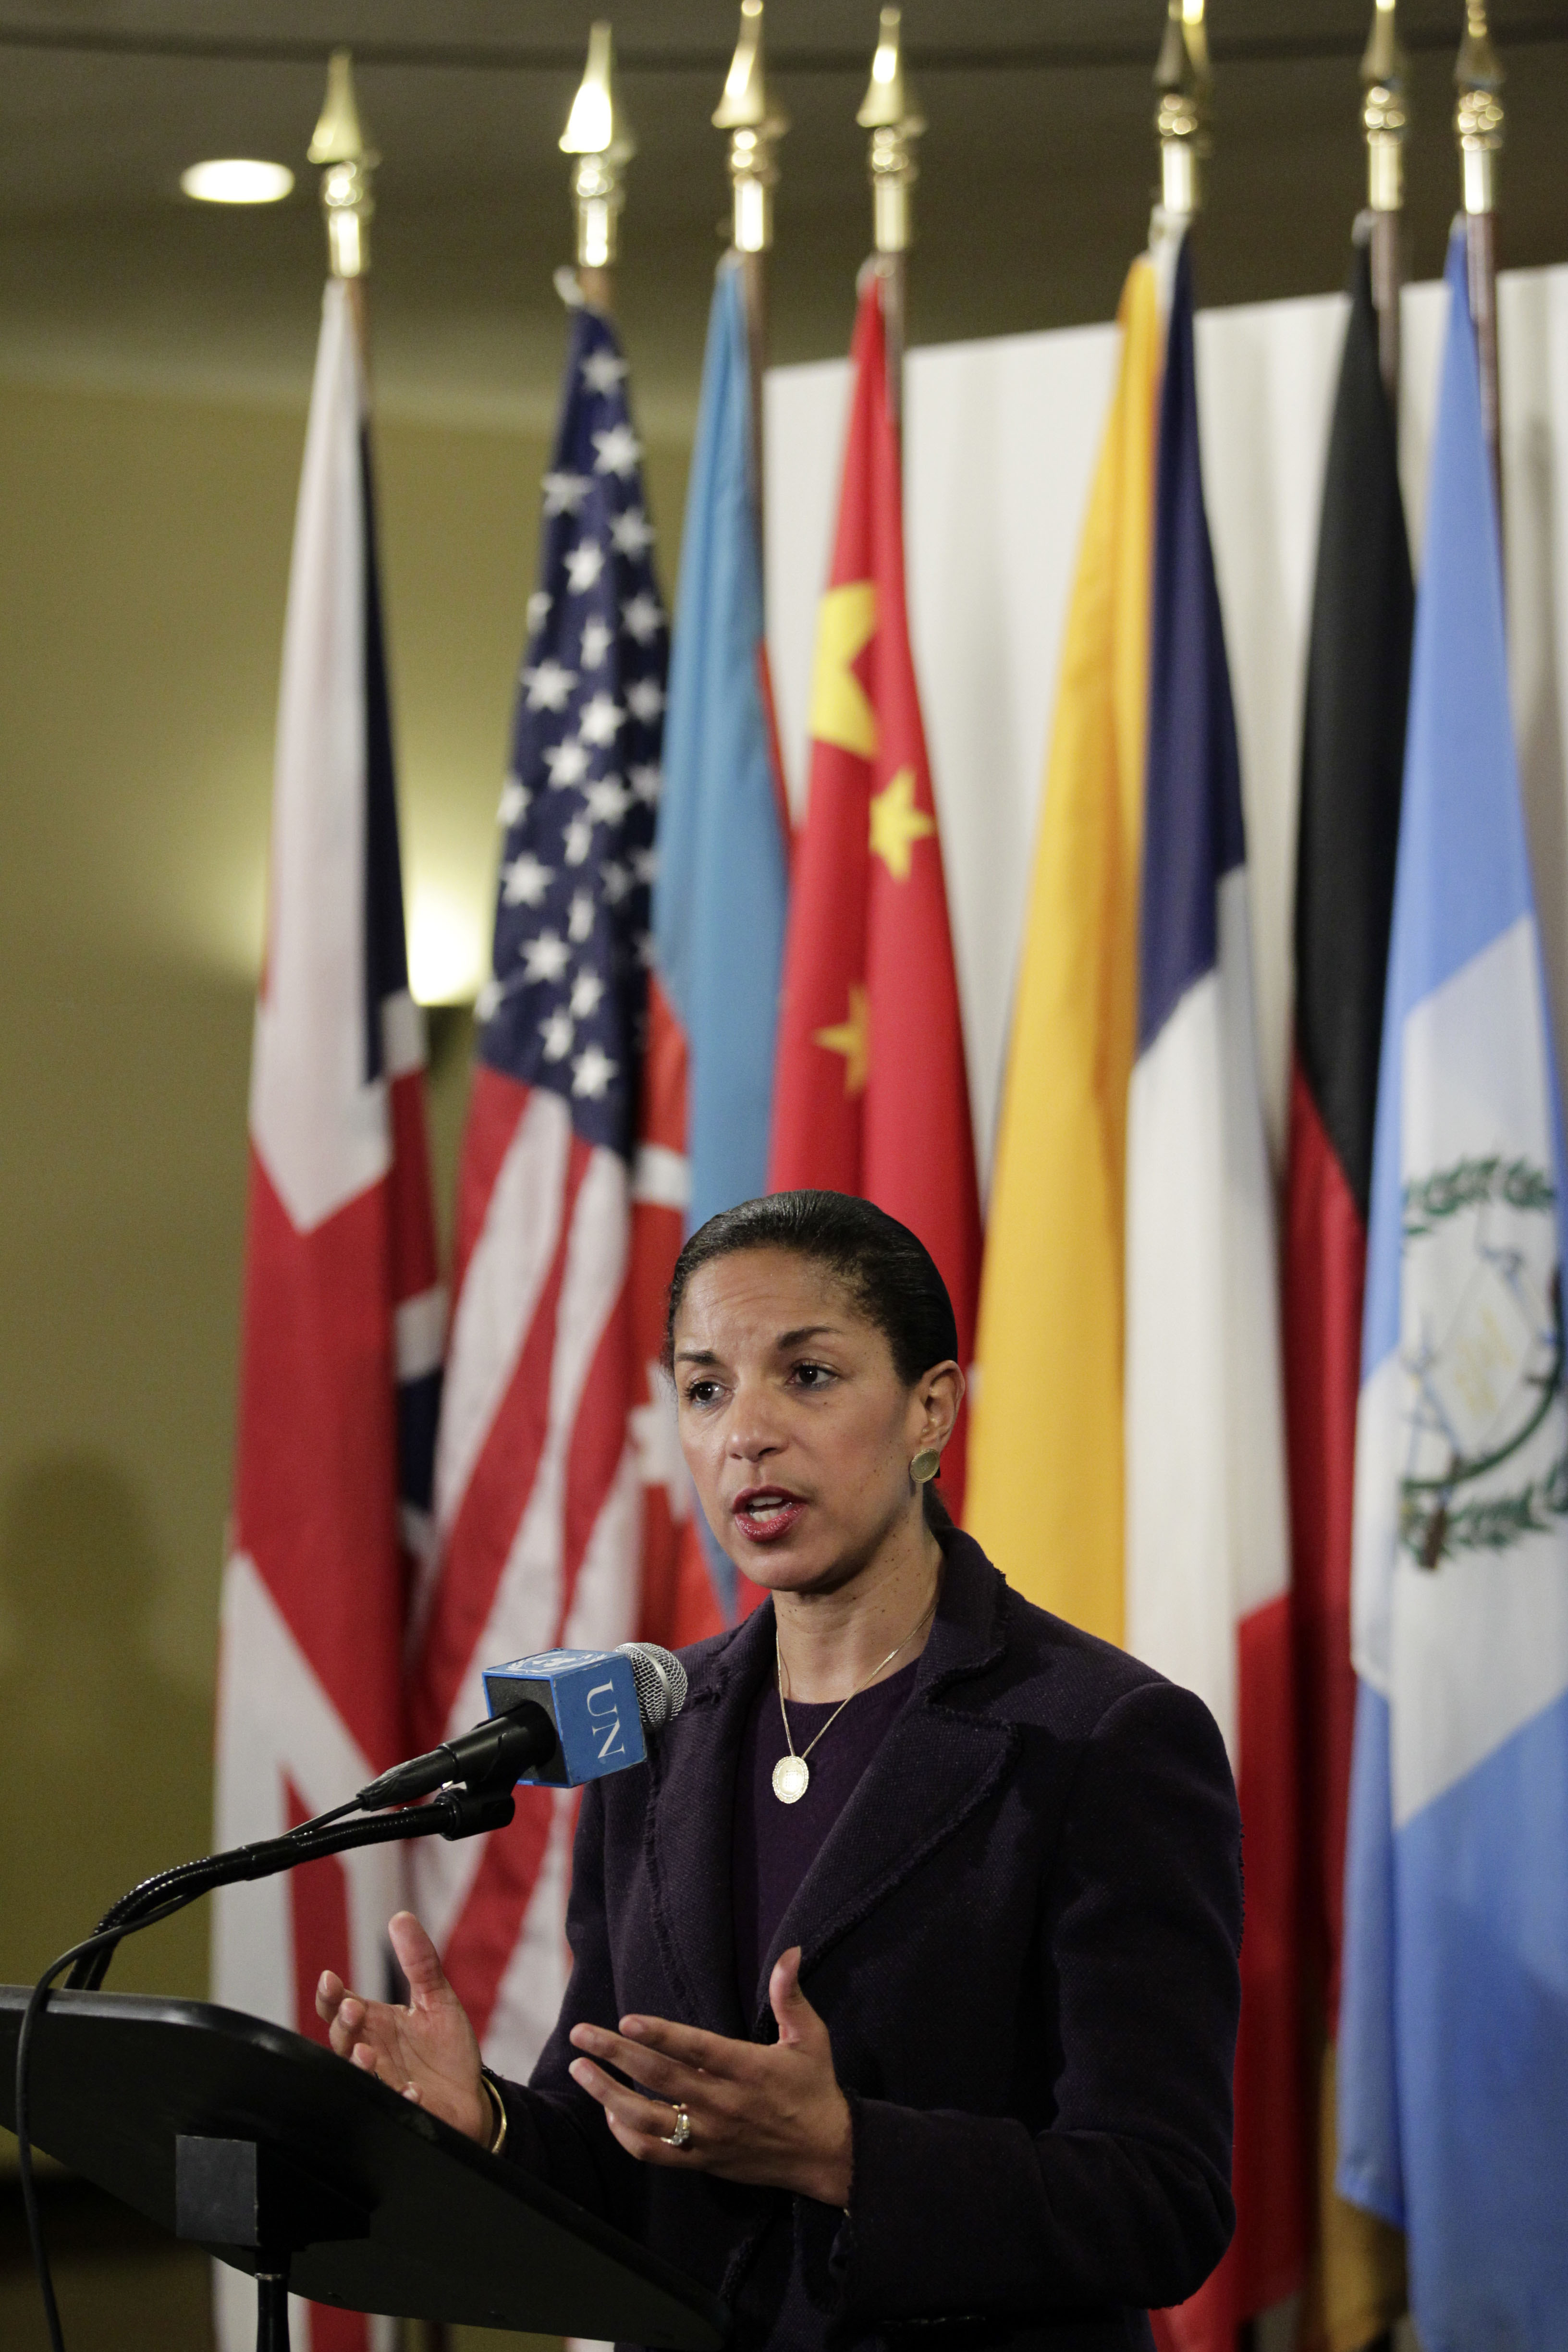 Susan Rice and Africa's Despots: An unsettling sympathy for Africa's despots